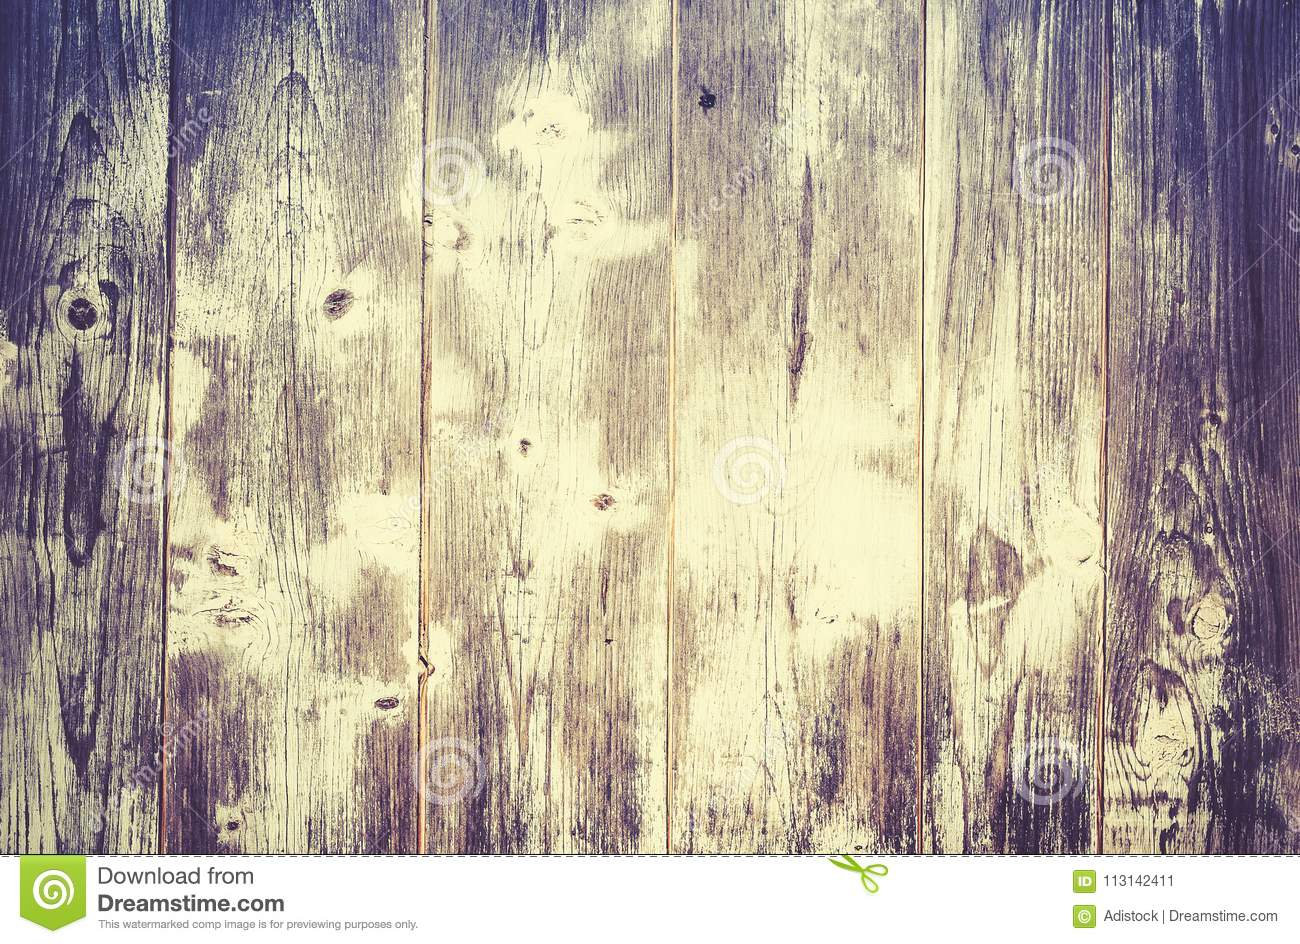 White wooden texture background. Old wood planks texture.